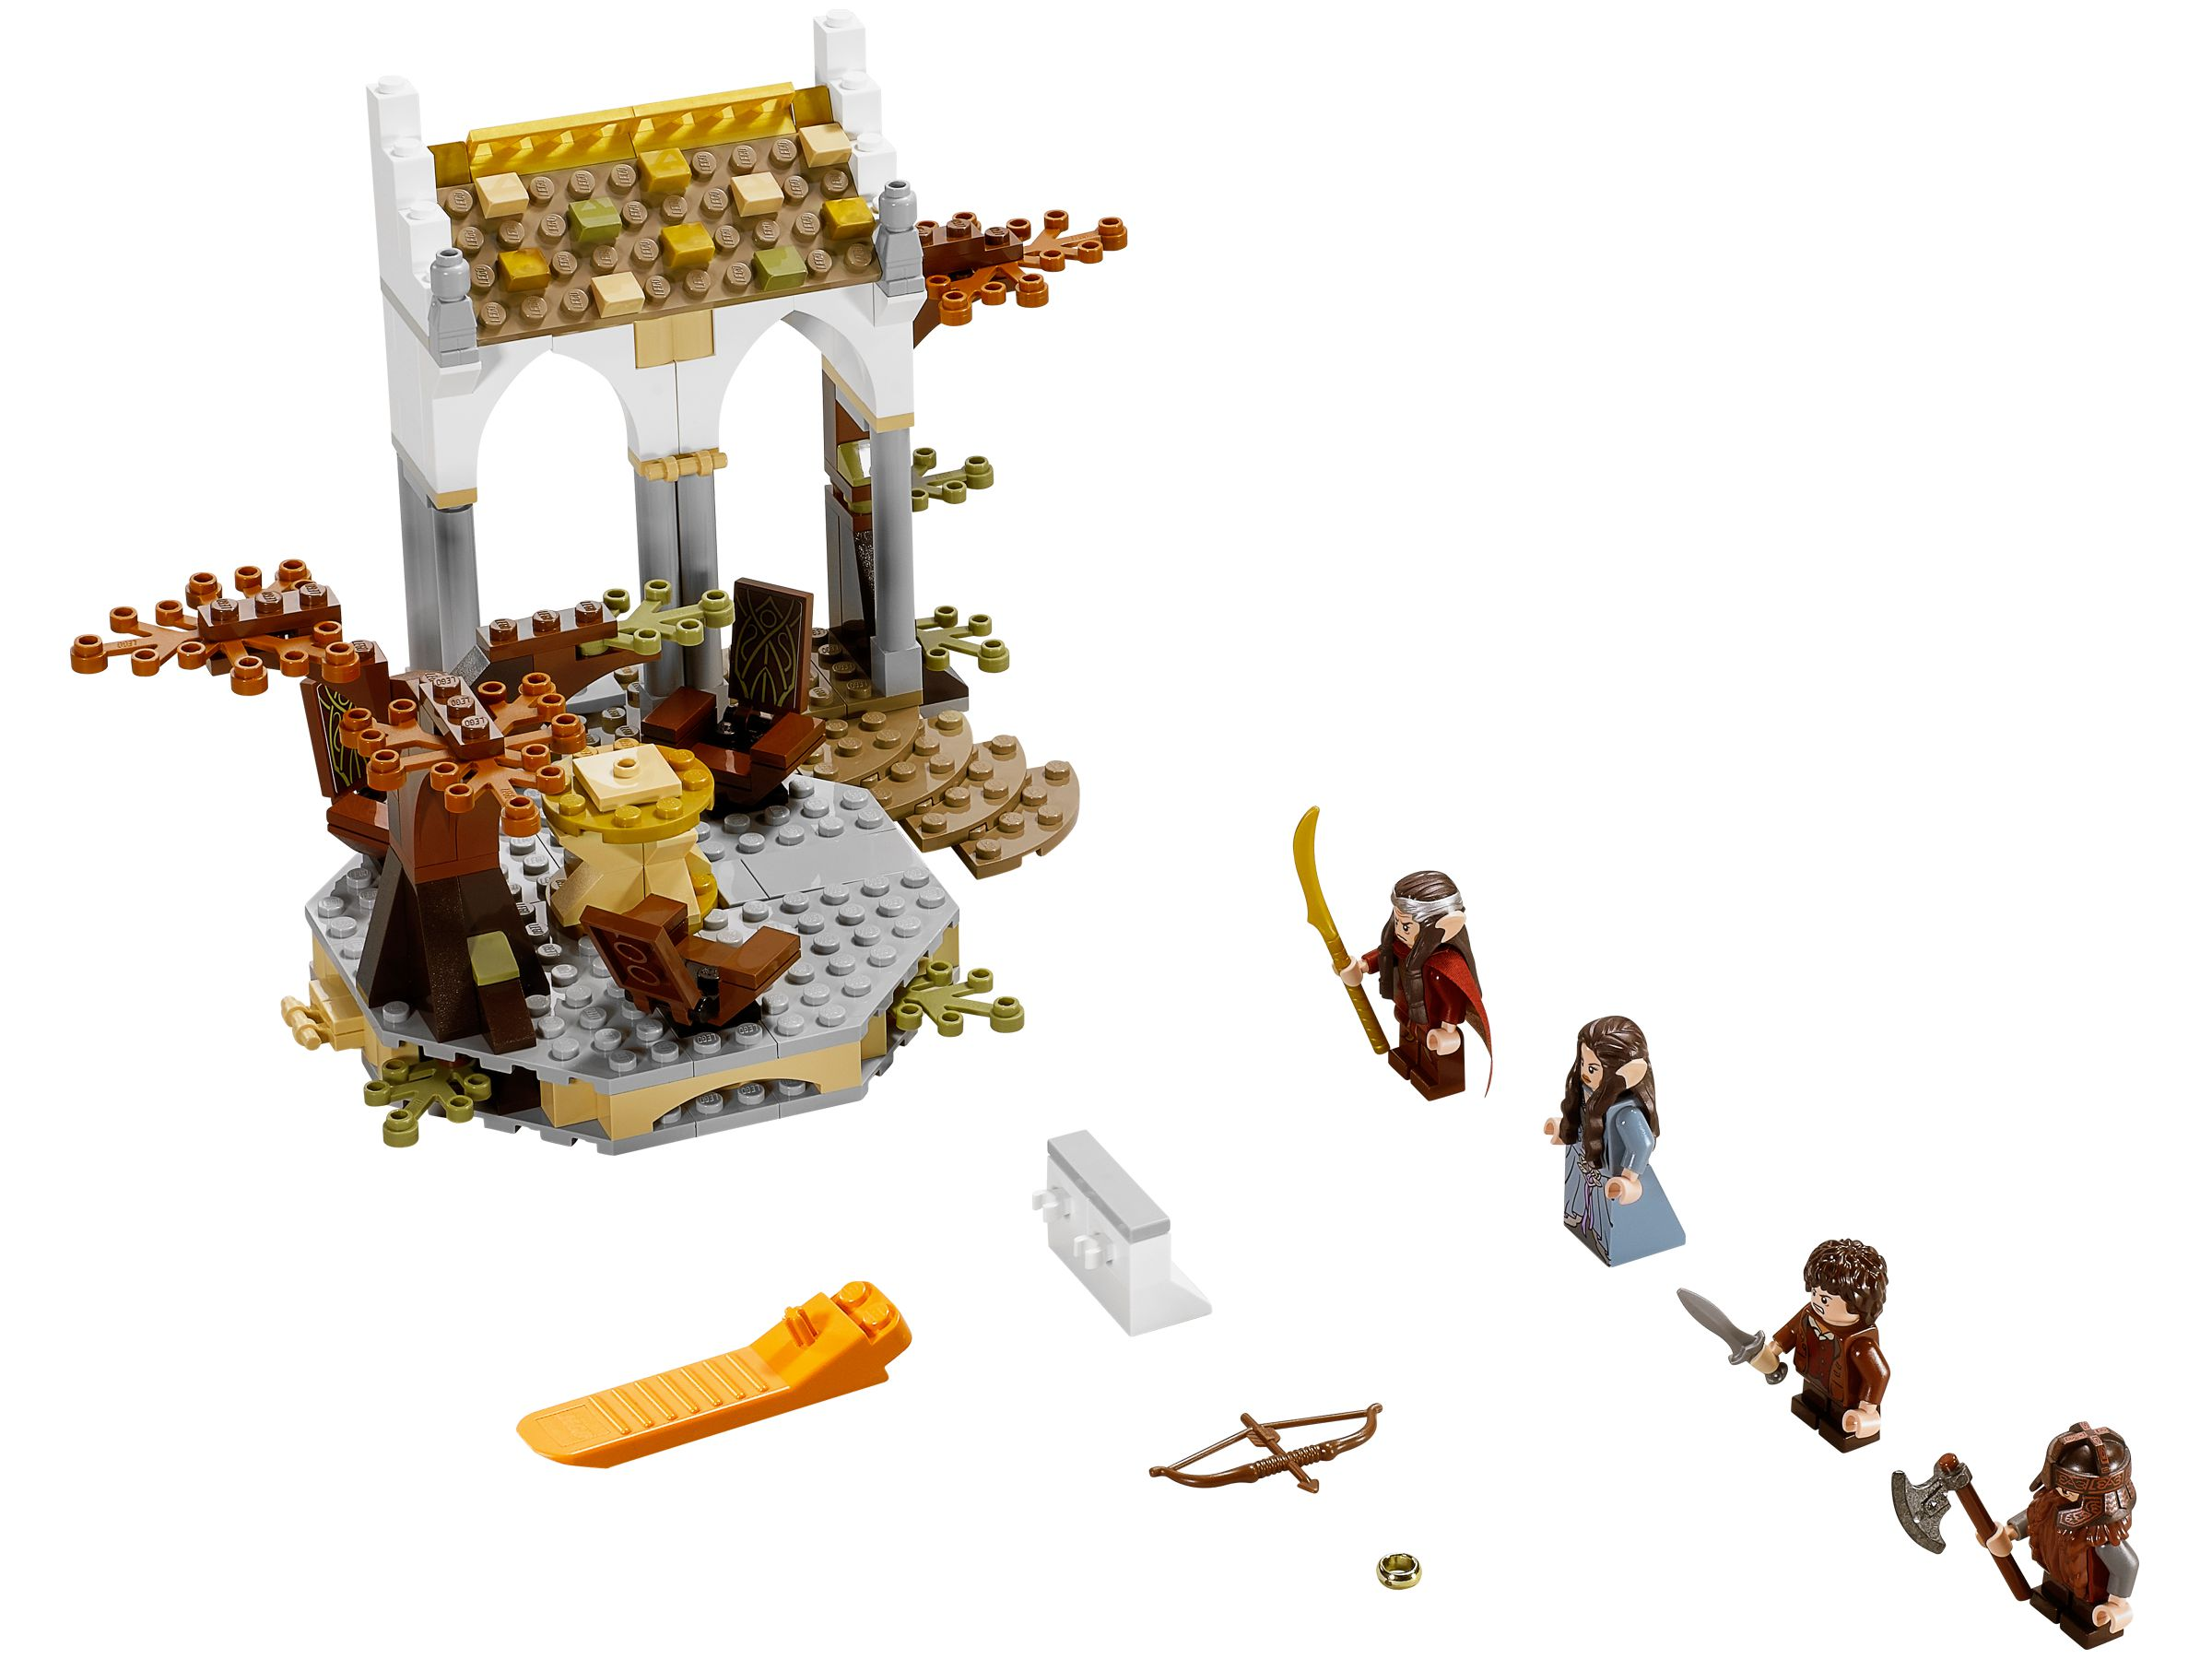 LEGO Lord of the Rings 79006 Der Rat von Elrond LEGO_79006.jpg